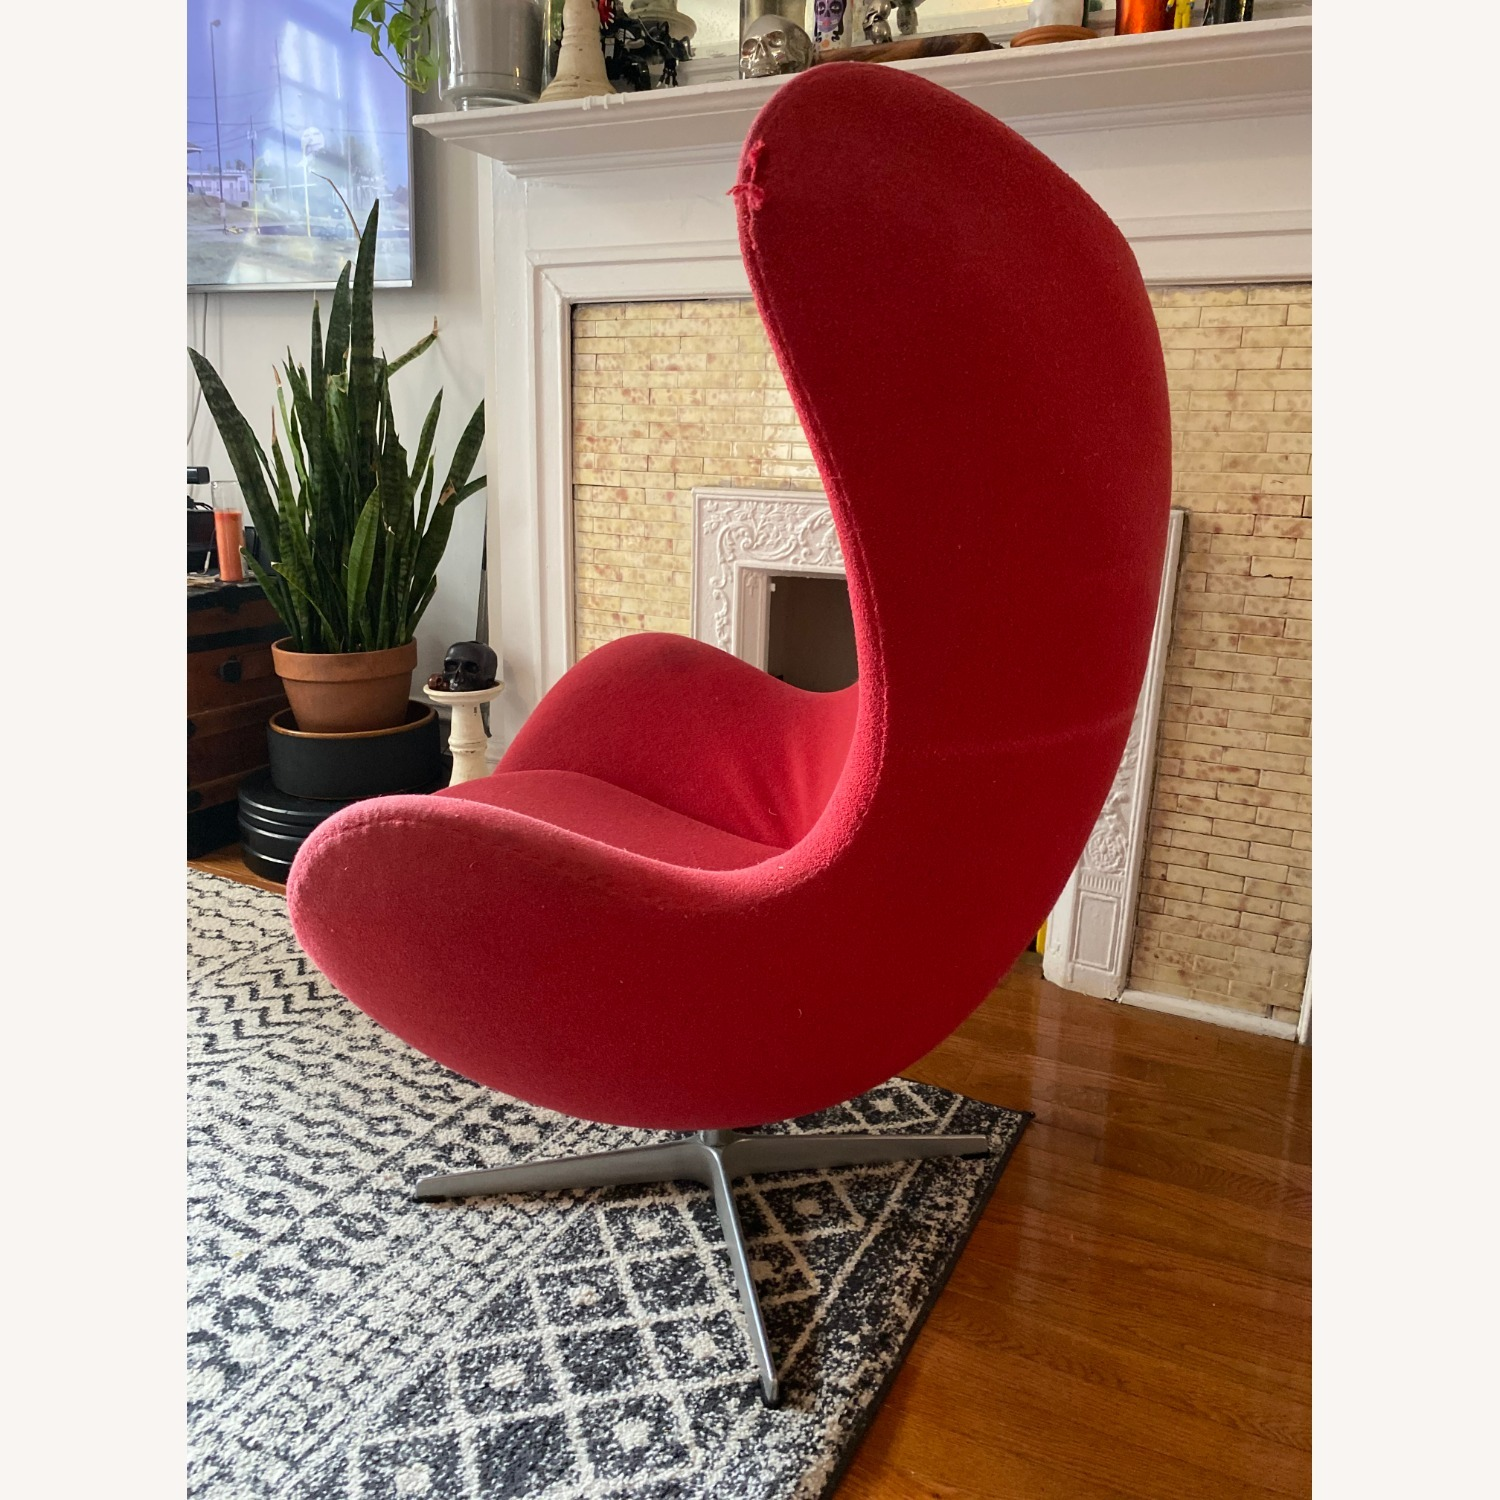 Fritz Hanson Egg Chair and footstool - image-3